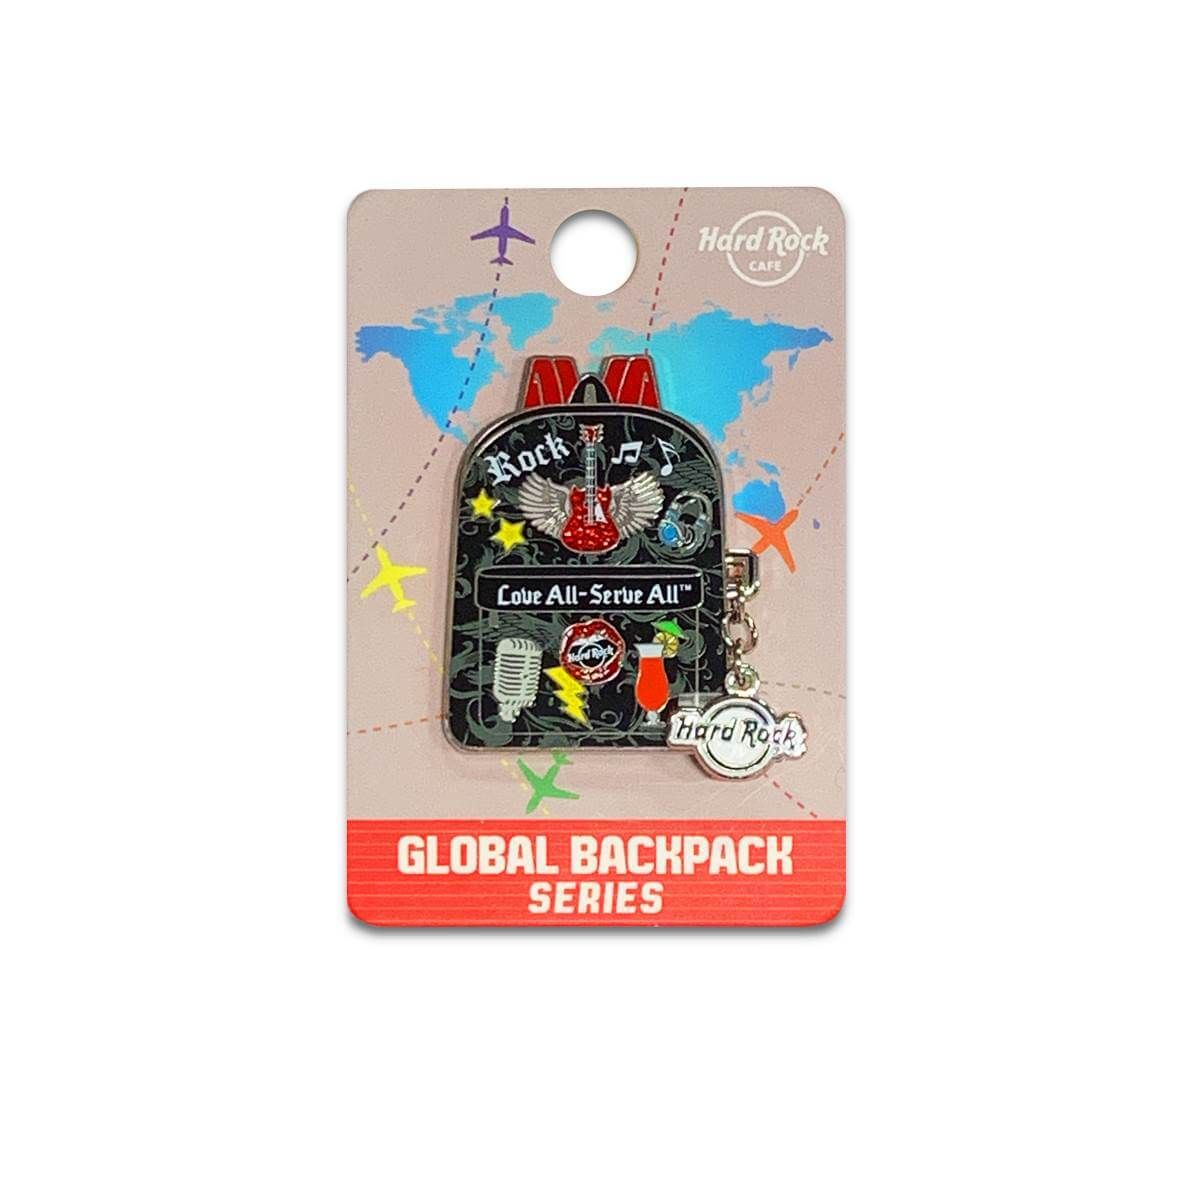 Backpack Global Series Pin 2019